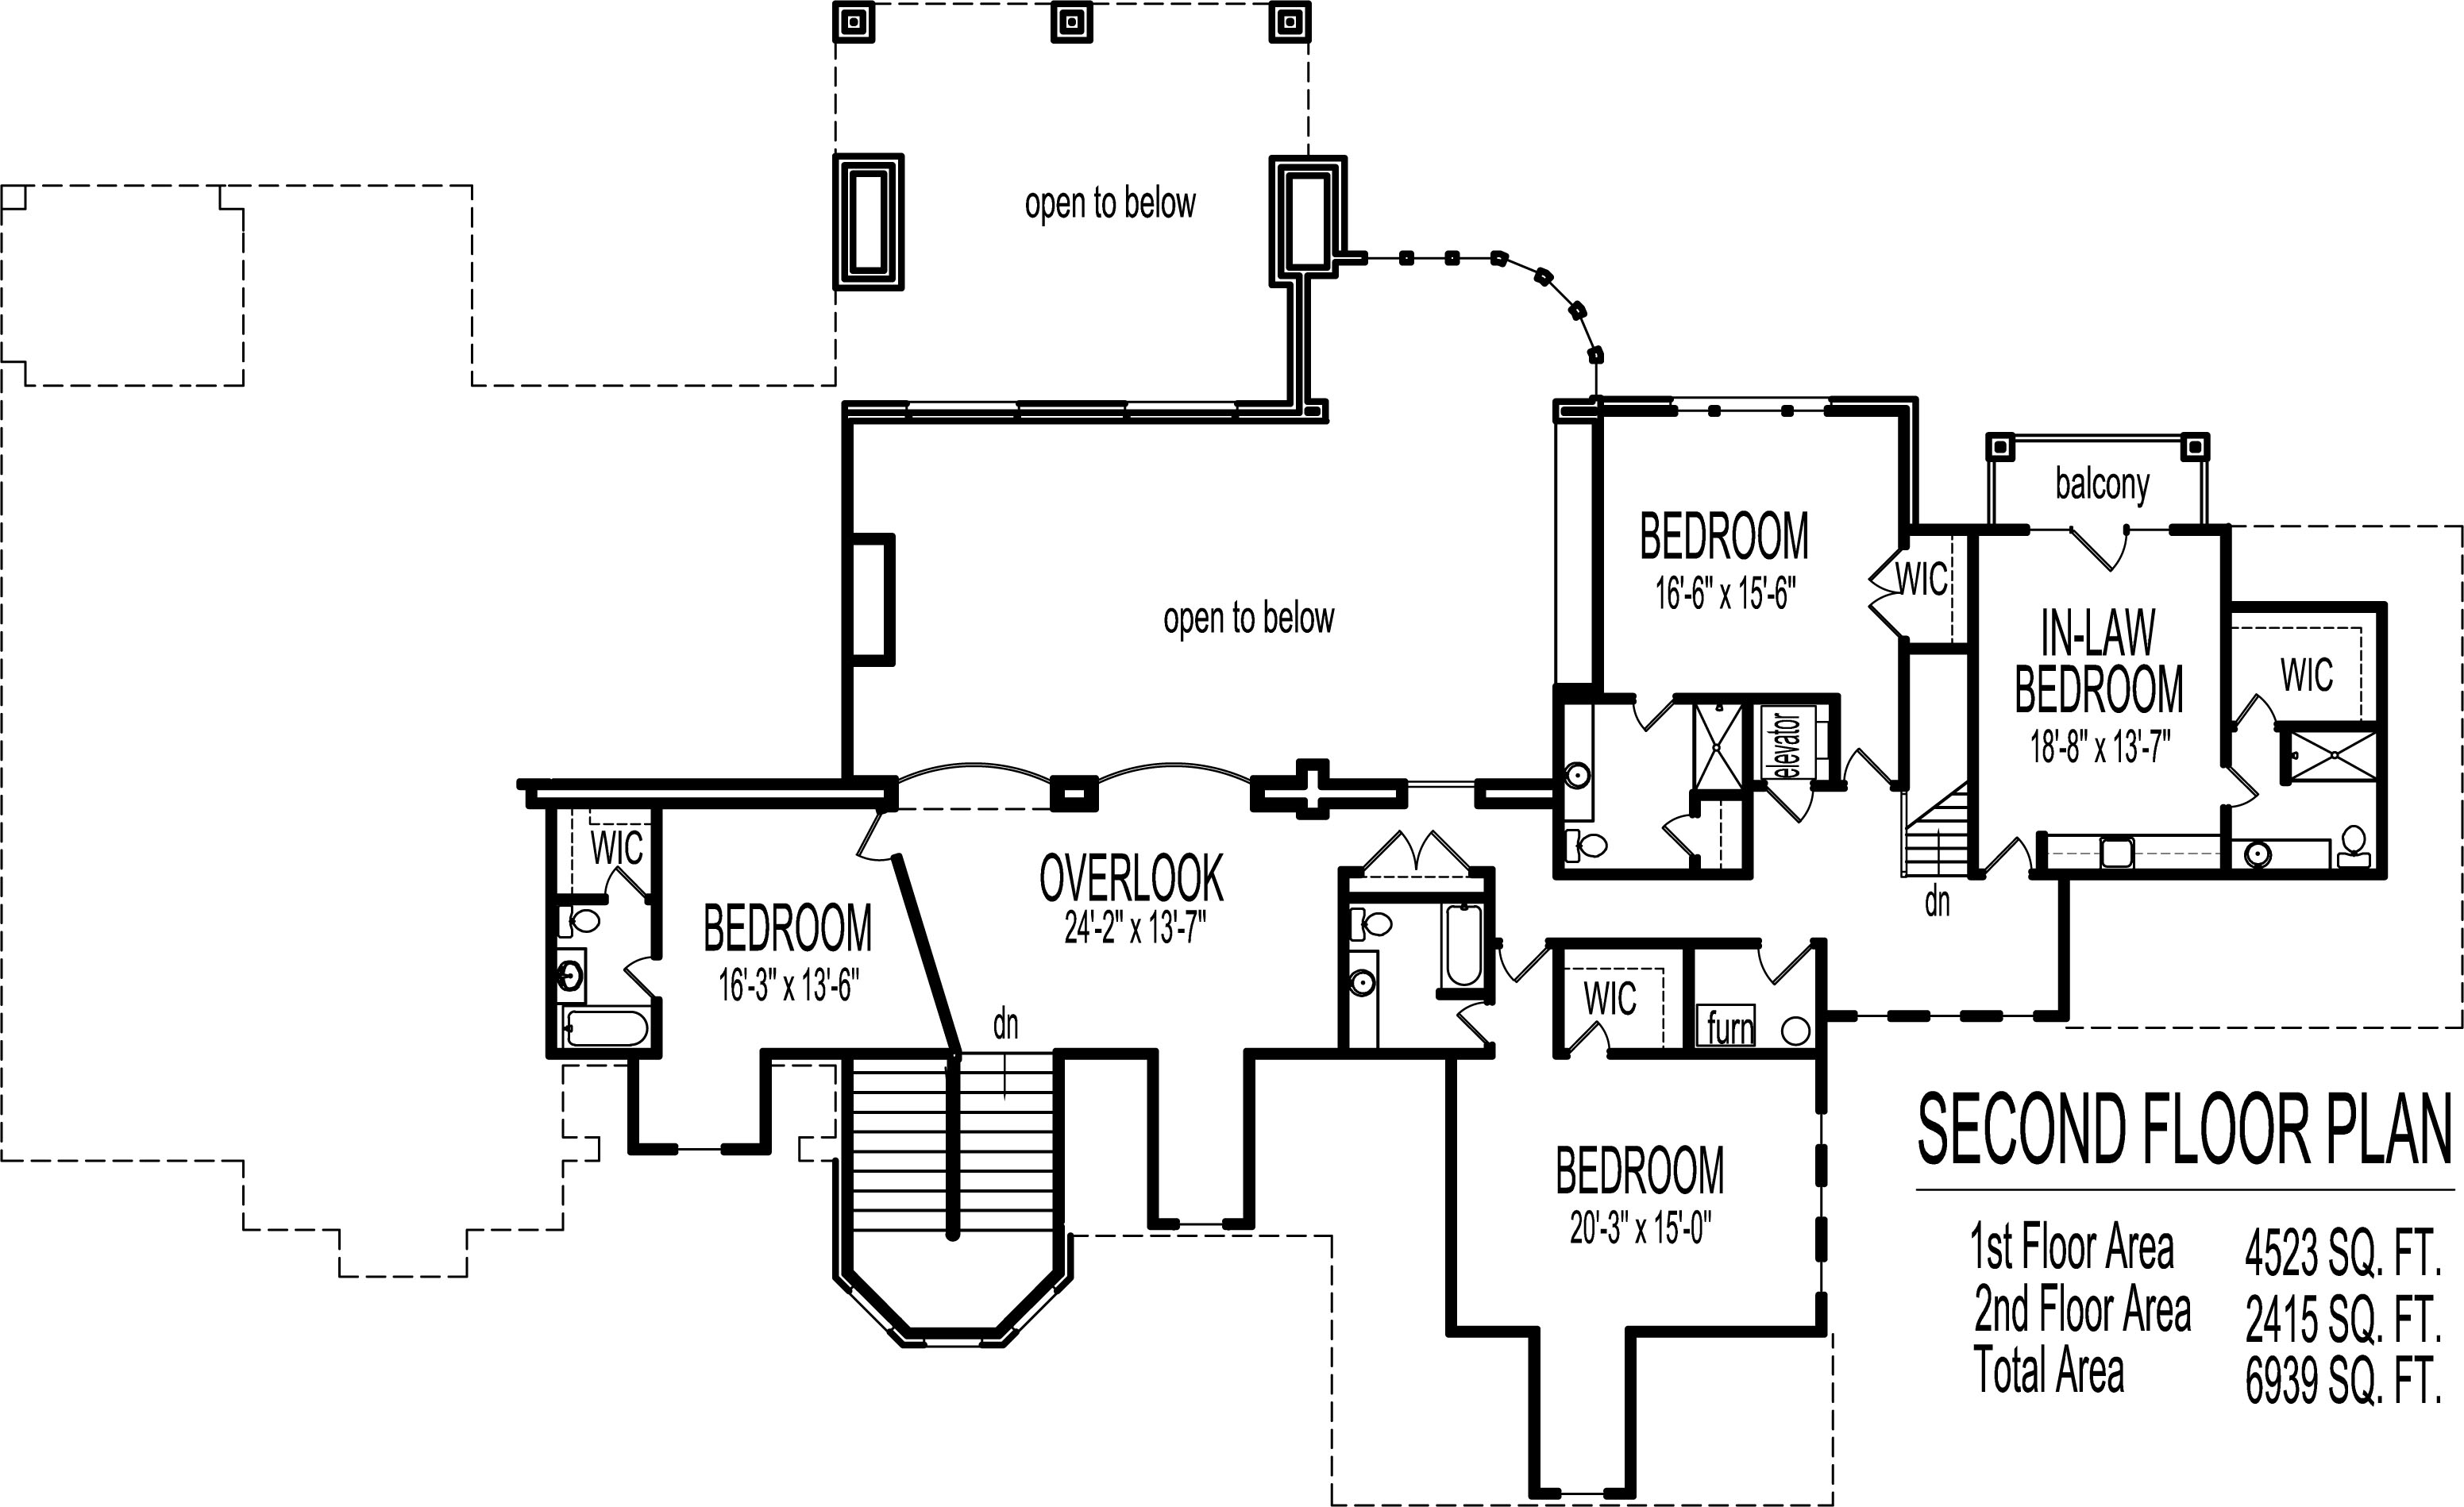 Dream house floor plans blueprints 2 story 5 bedroom large for Huge mansion floor plans